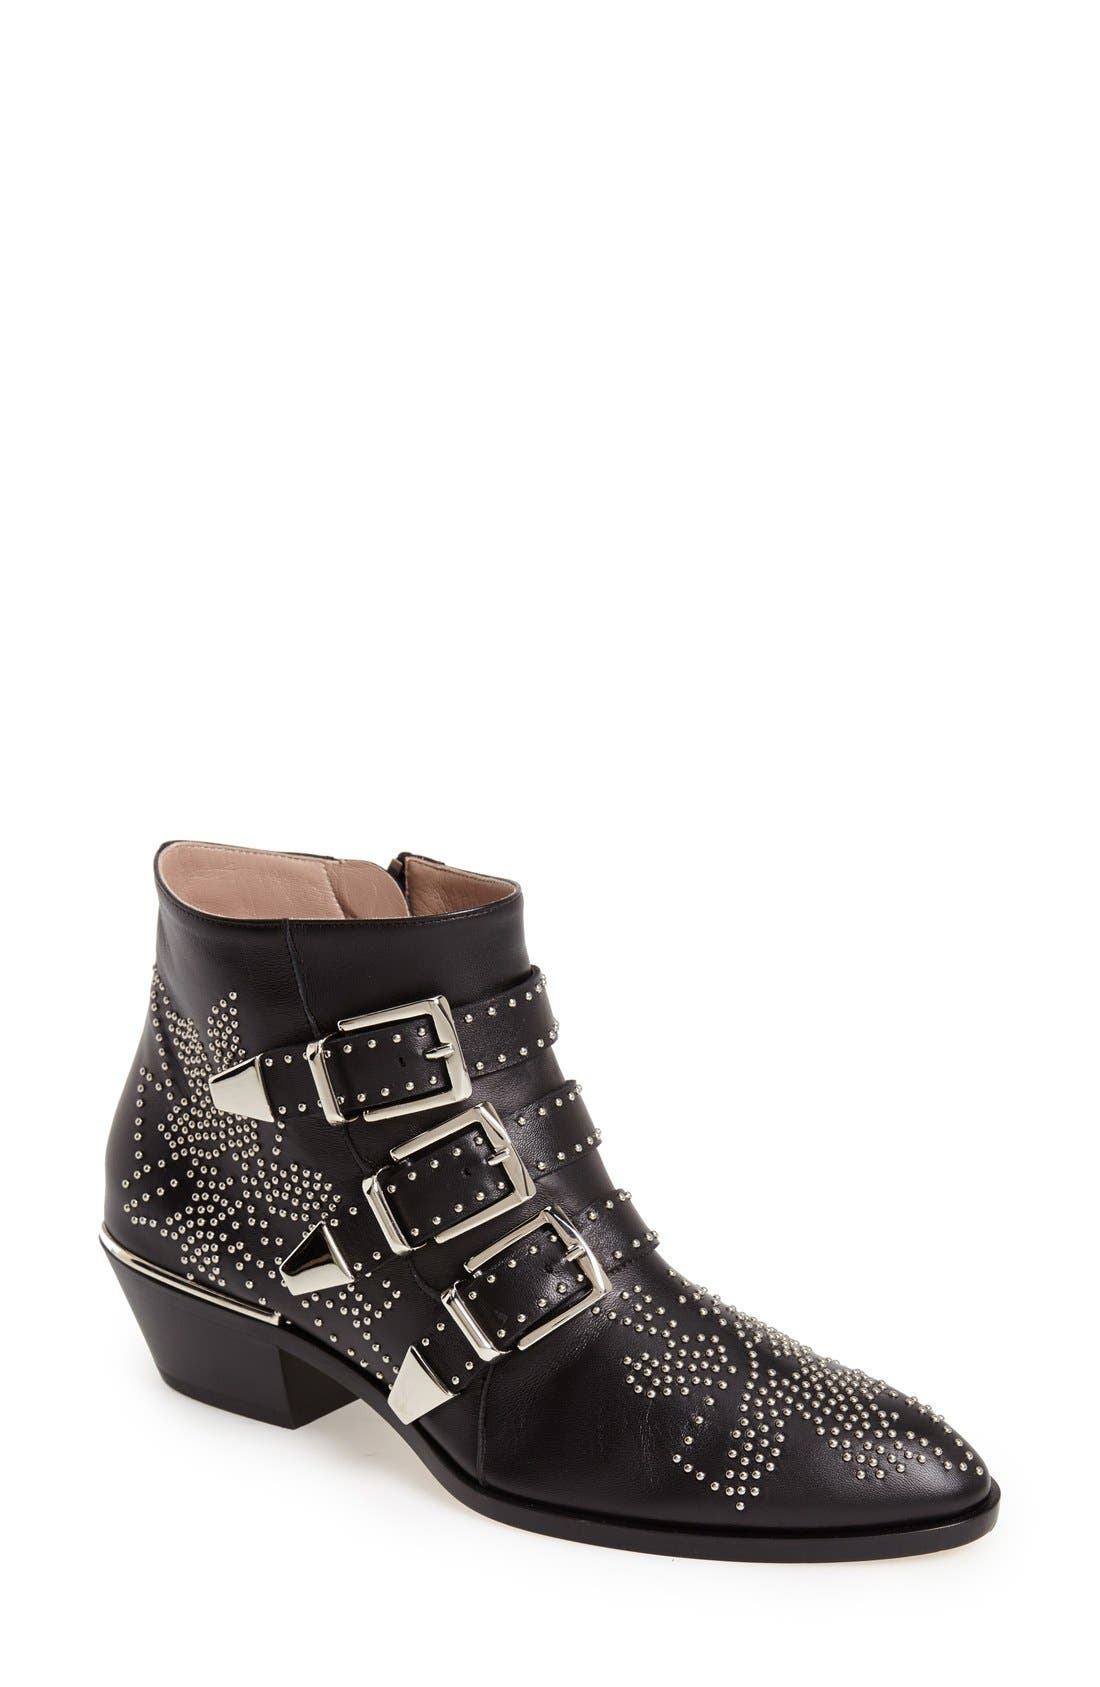 'Suzanna' Stud Bootie,                             Main thumbnail 1, color,                             Black